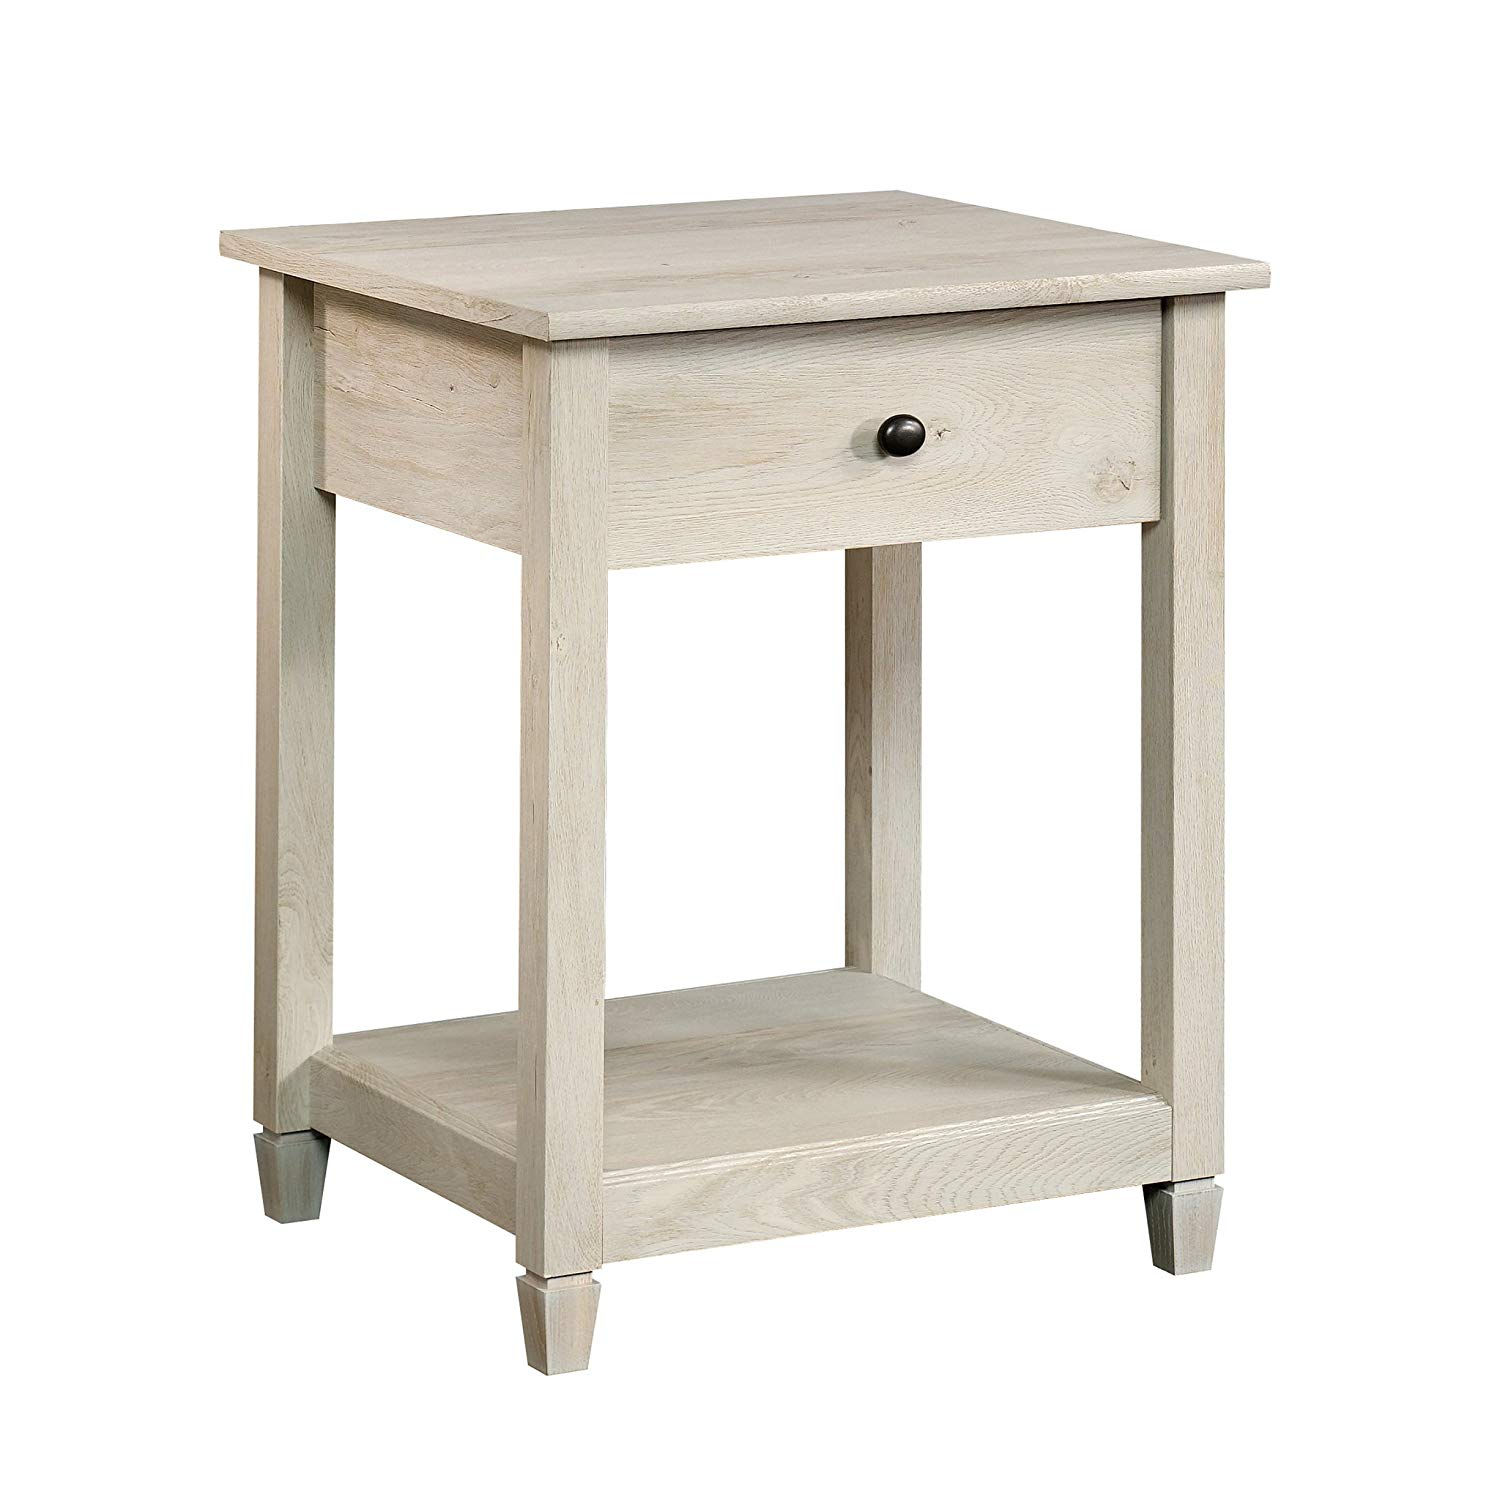 sauder edge water side table chestnut accent chalked finish kitchen dining west elm emmerson contemporary glass end tables battery operated room lights living furniture pieces